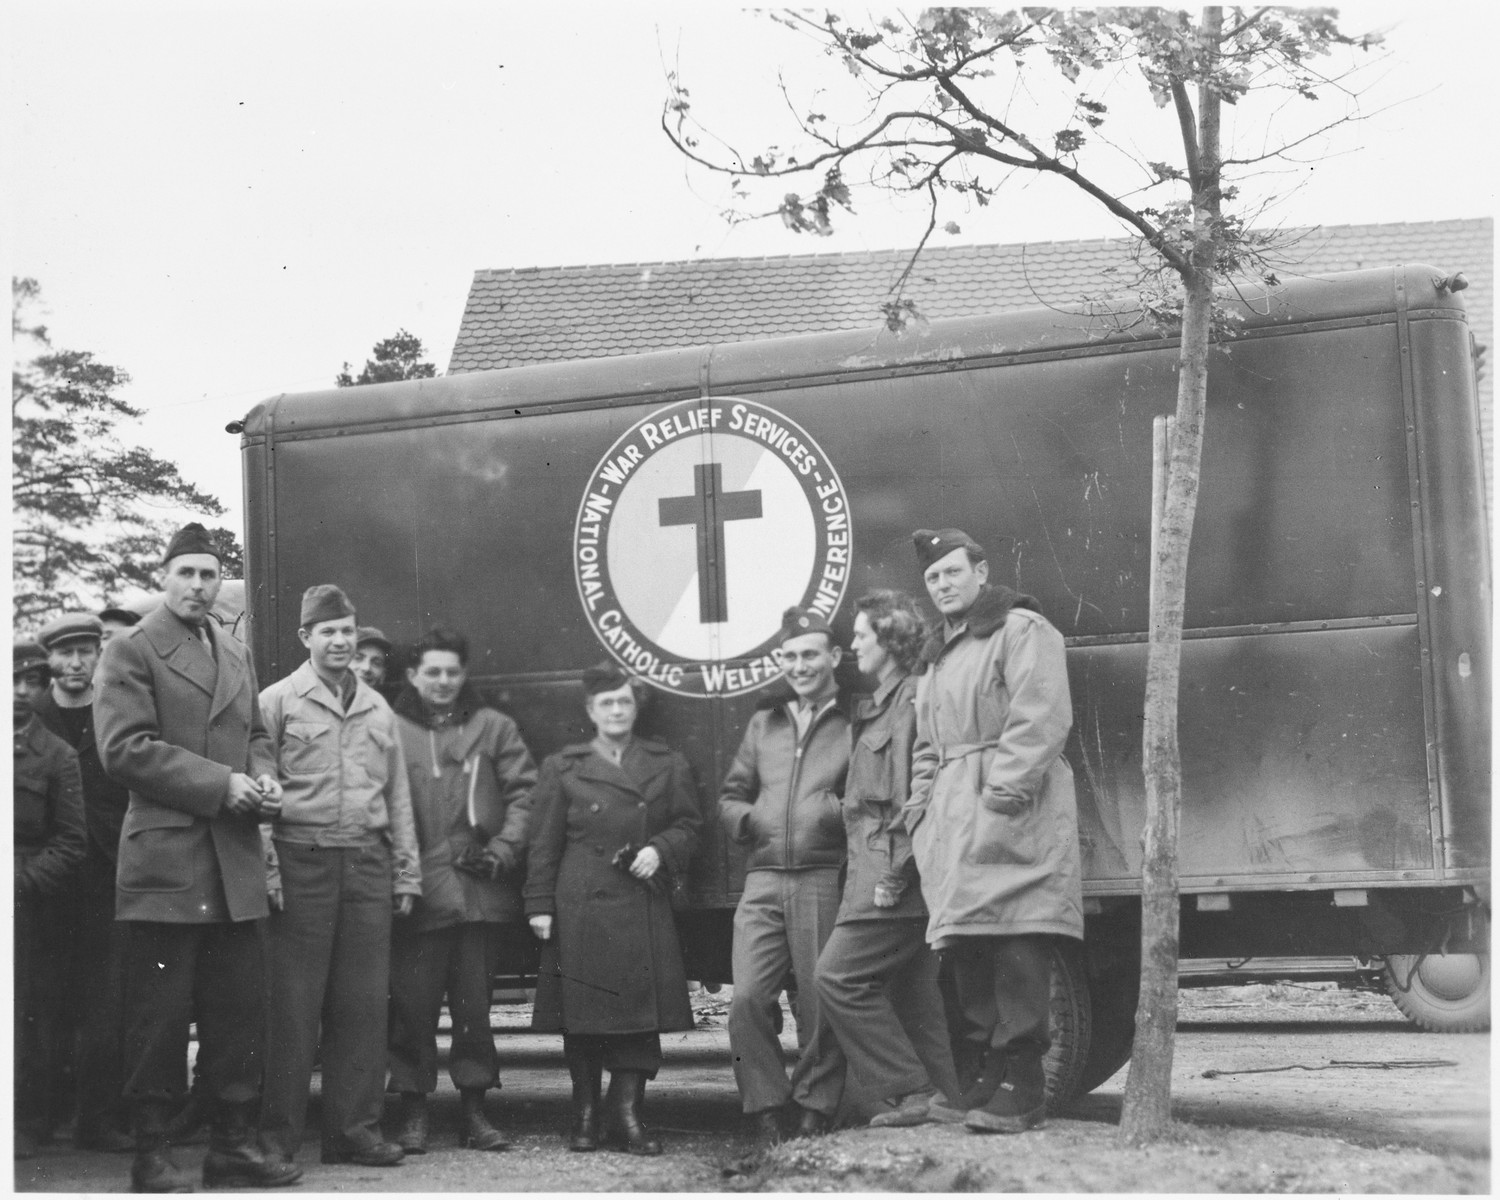 UNRRA workers stand next to an ambulance supplied by the National Catholic Welfare Conference (probably in the Foehrenwald displaced persons' camp).  Marion van Binsbergen Pritchard is pictured second from the right.